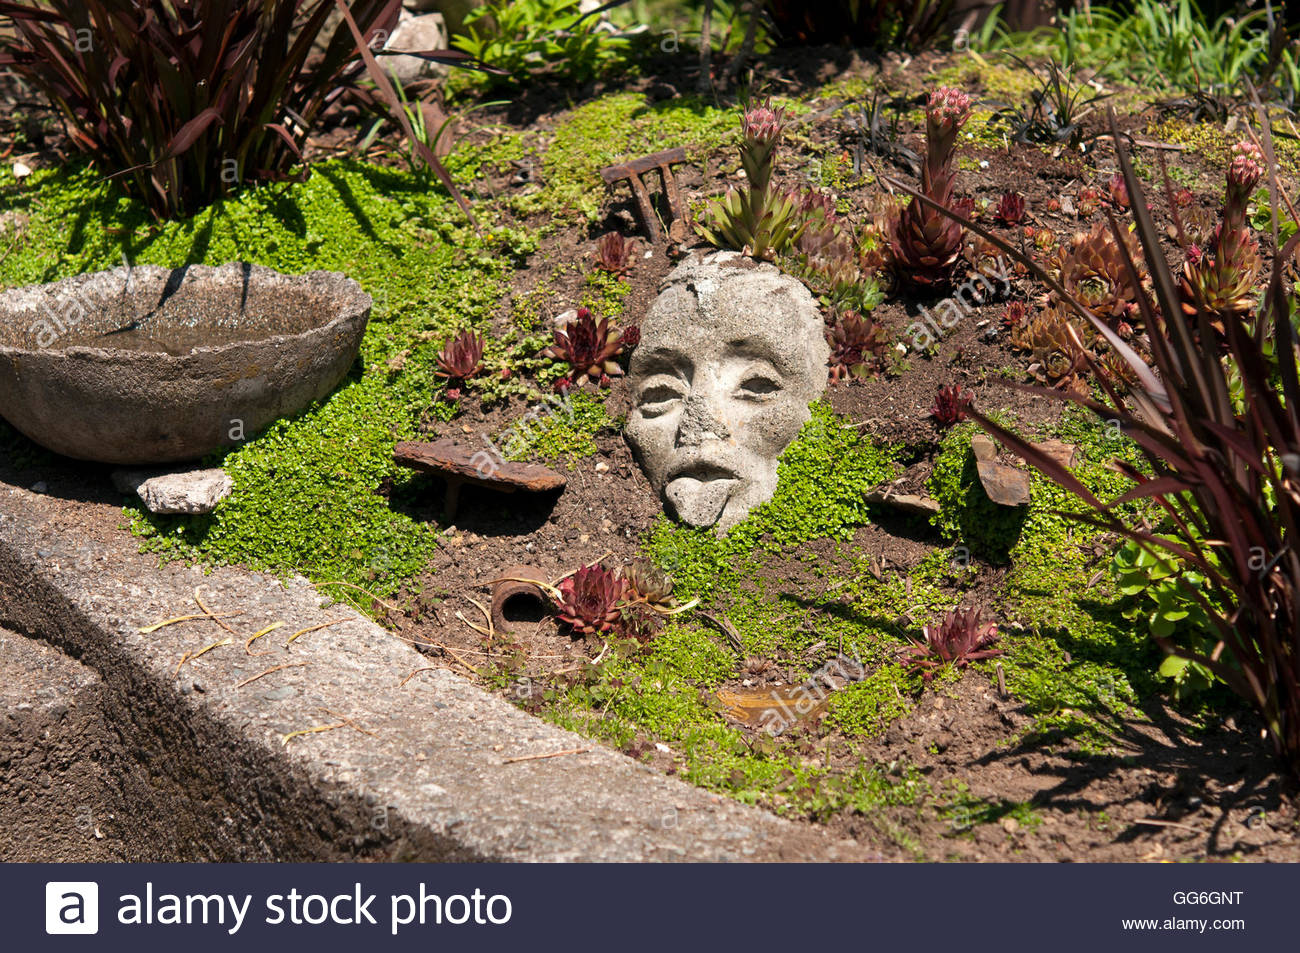 Vancouver, BC   July 2, 2011   A Well Worn But Interesting Garden Face  Sculpture. Photo: © Rod Mountain Http://bit.ly/RM Archiv